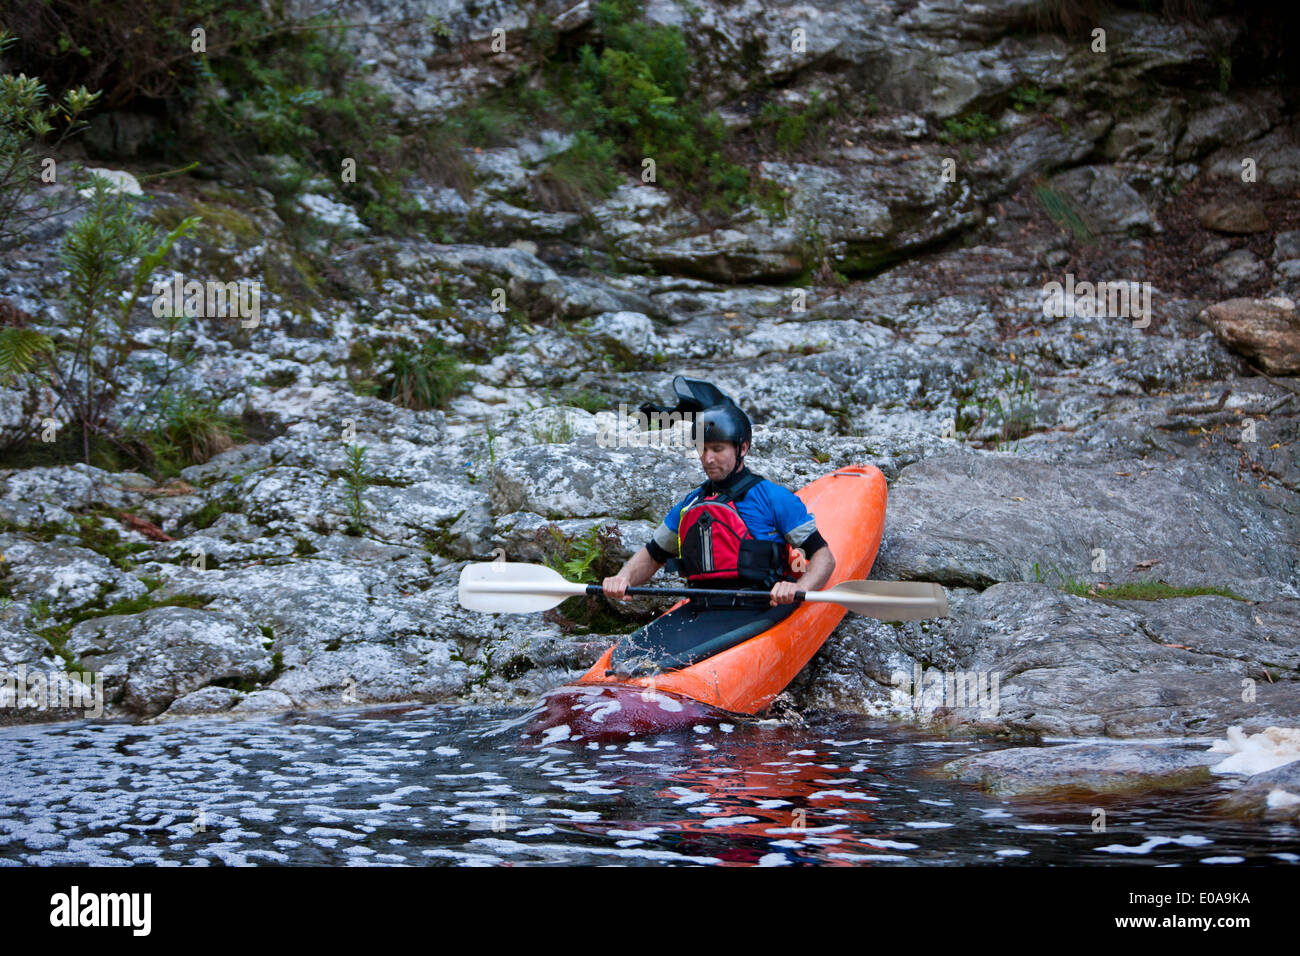 Mid adult man moving kayak from waters edge into river - Stock Image